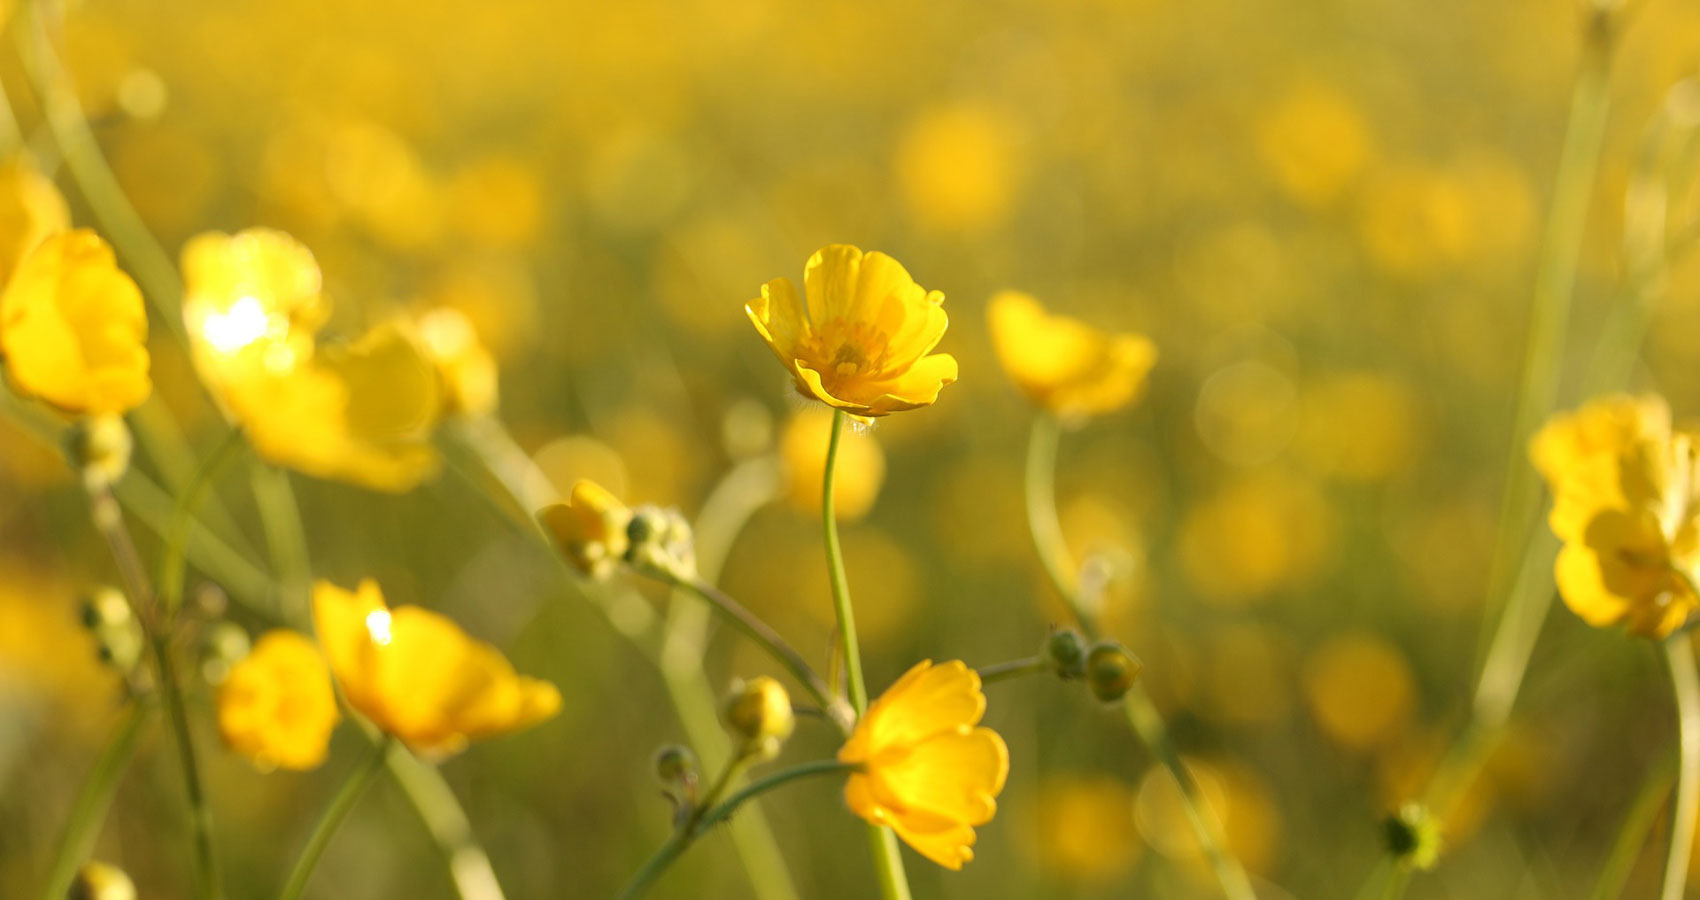 Fields of Gold written by Steve Pearson at Spillwords.com